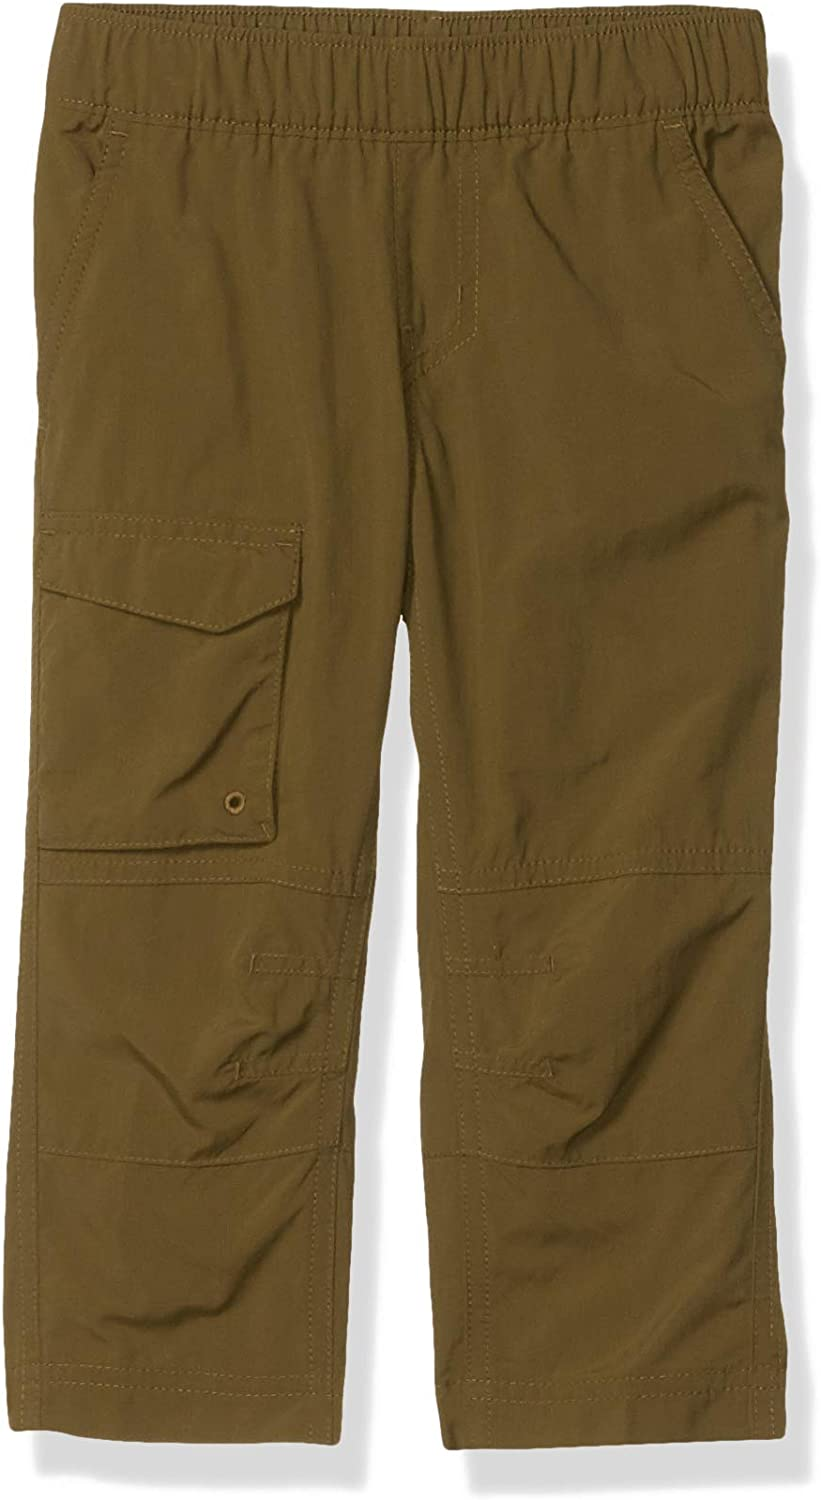 Max 71% OFF Columbia Kids Baltimore Mall Baby Silver Ridge Pant Pull-On